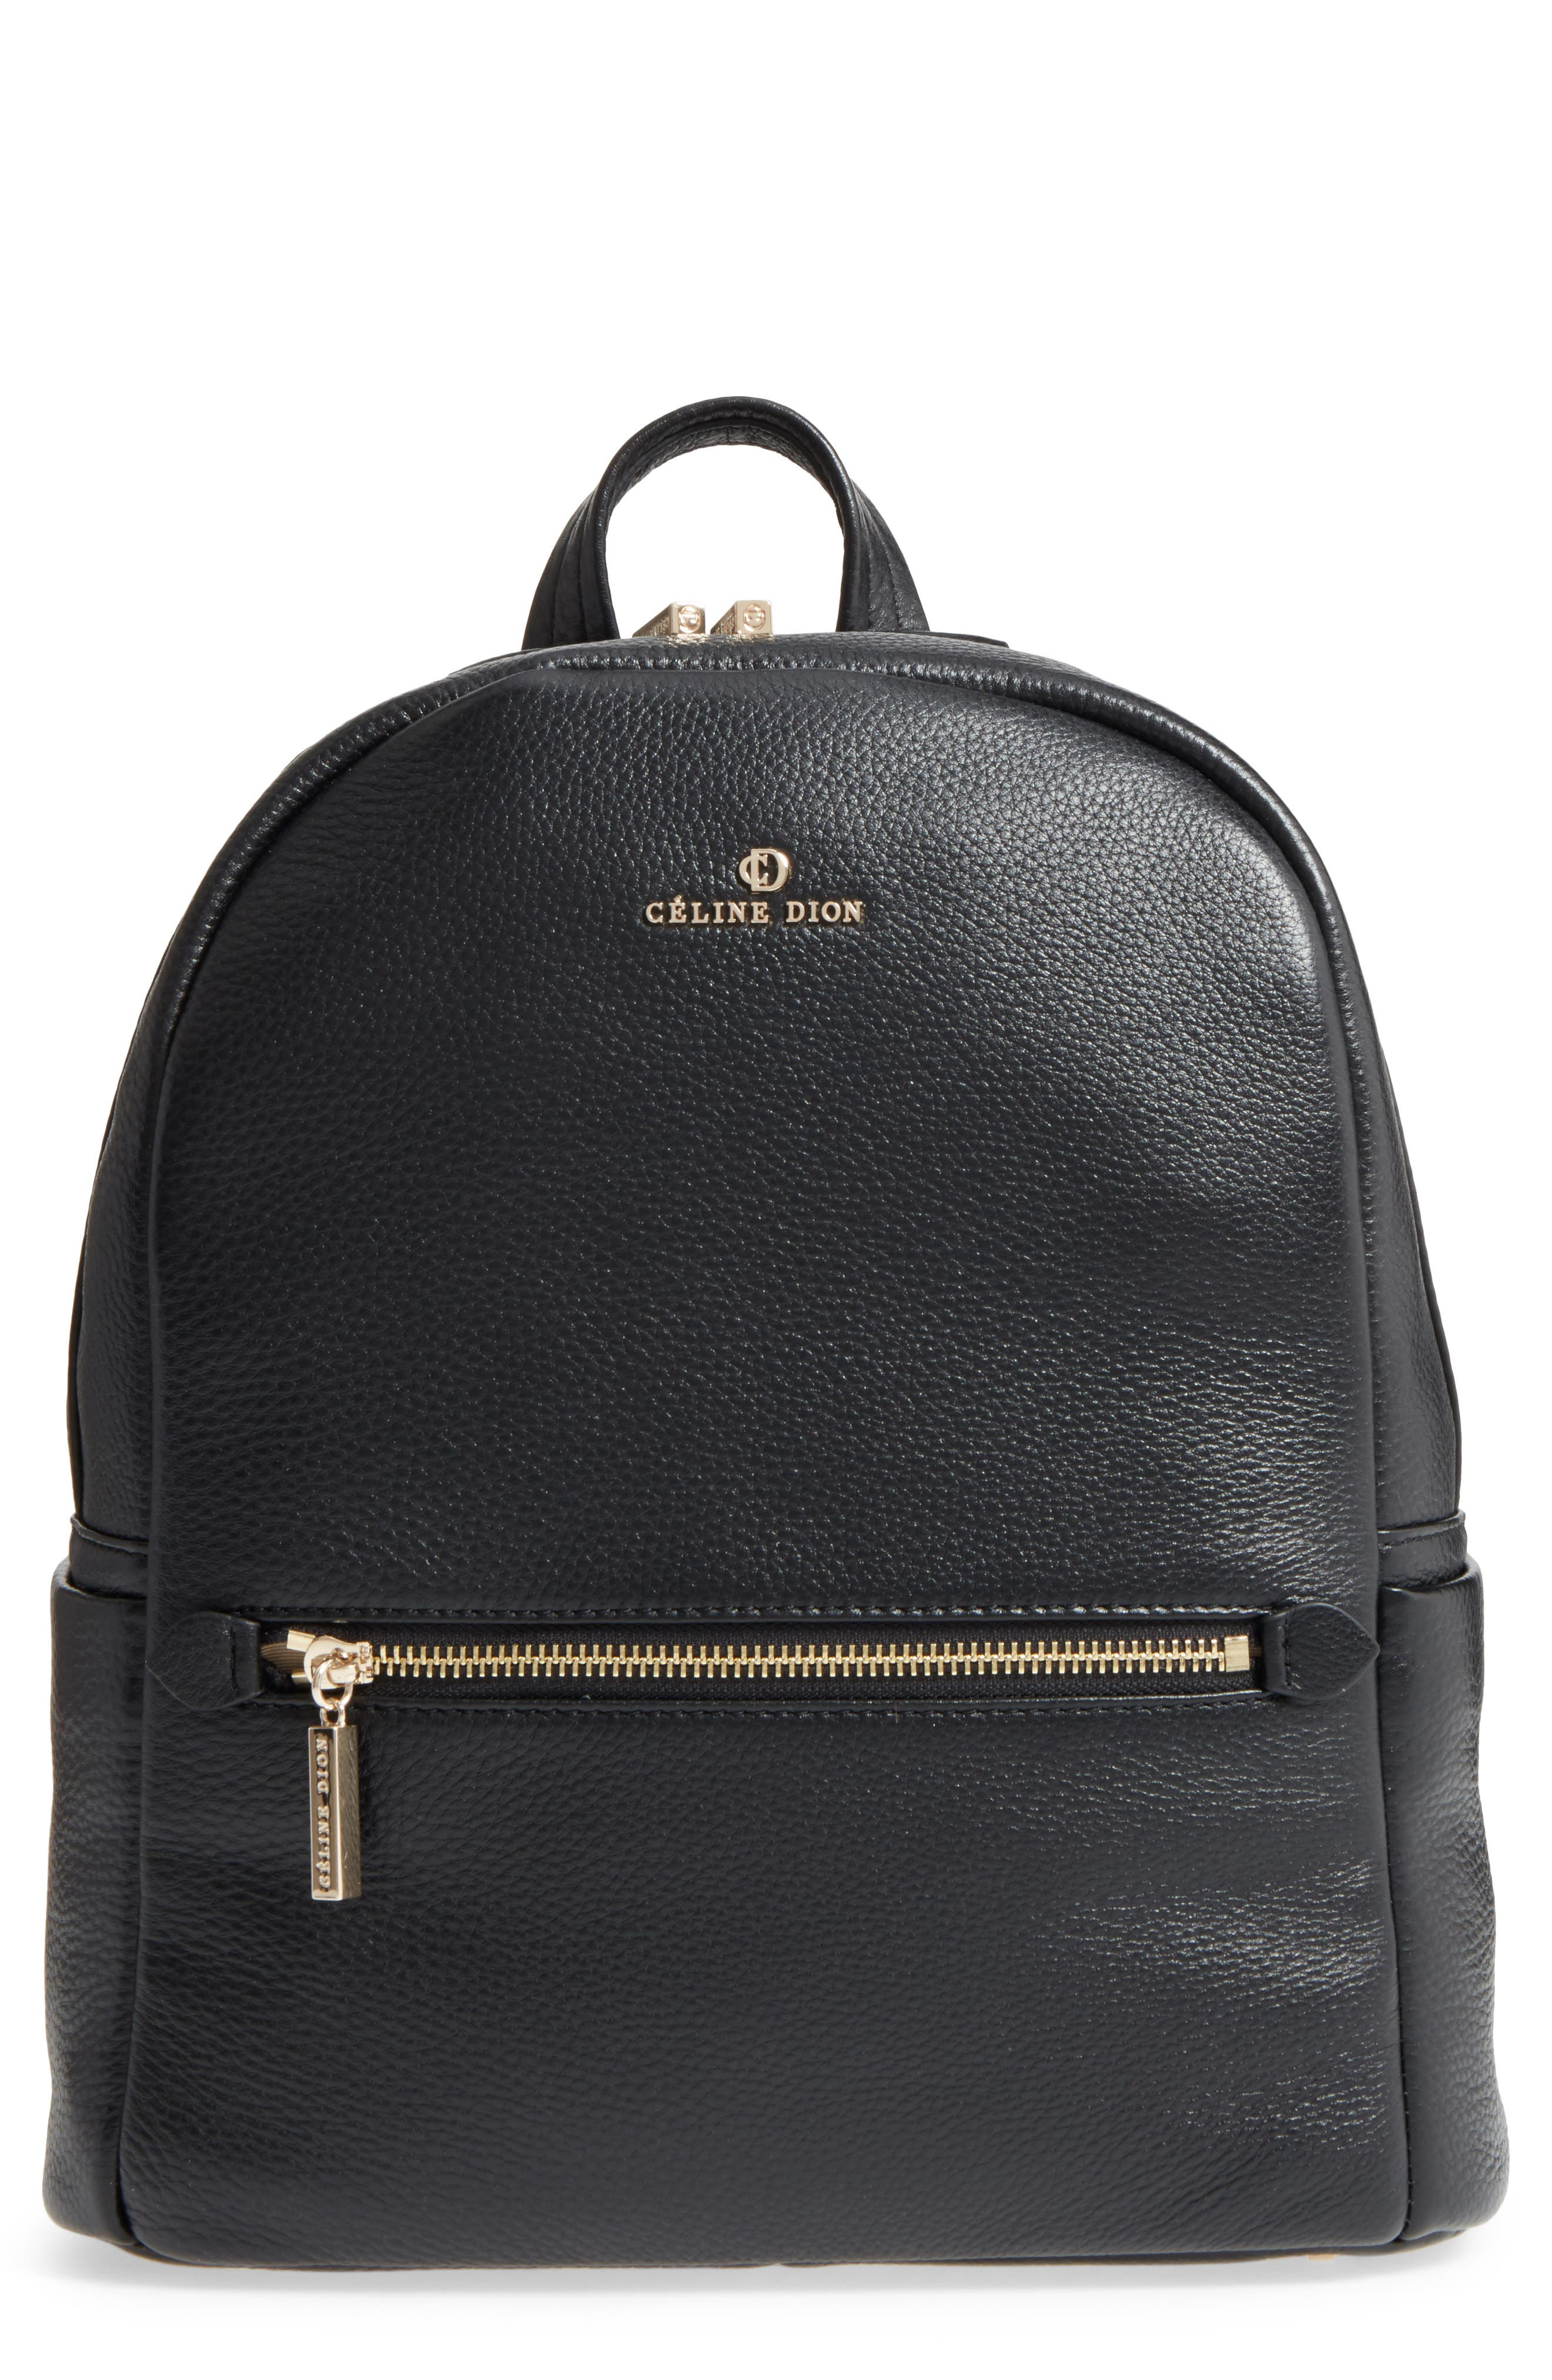 Céline Dion Adagio Leather Backpack